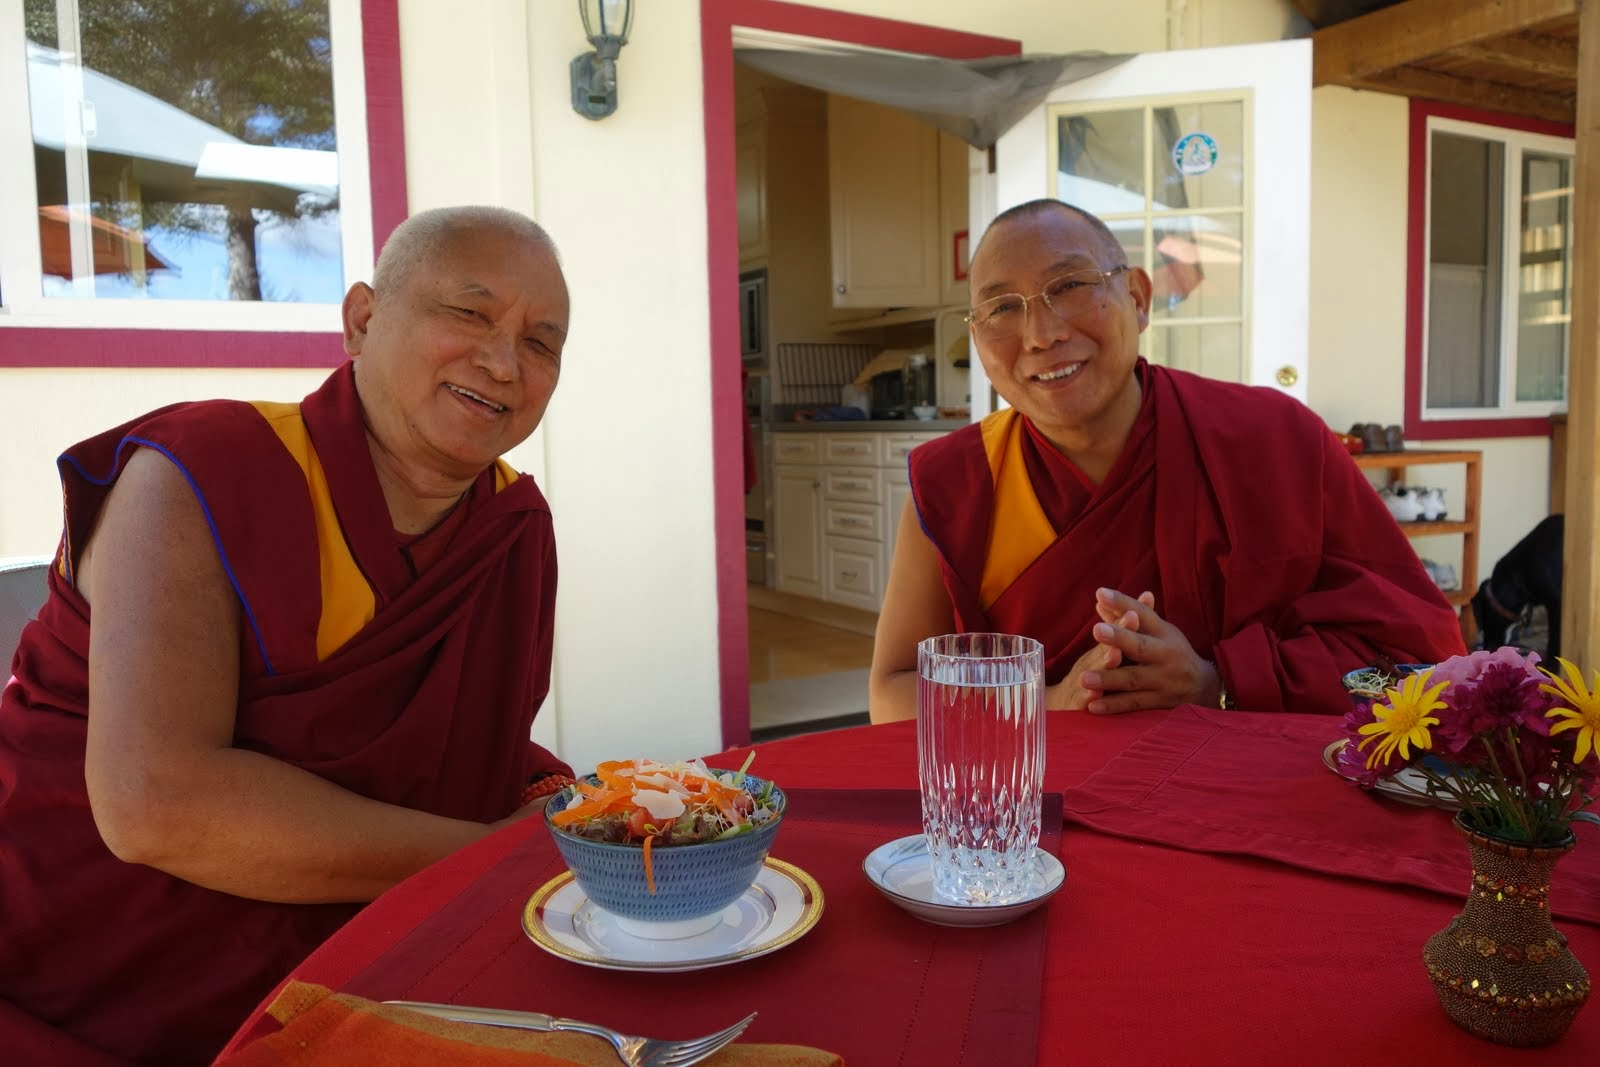 Lama Zopa Rinpoche and Dagri Rinpoche having lunch at Kachoe Dechen Ling, CA, USA Oct 2013. Photo: Ven. Roger Kunsang